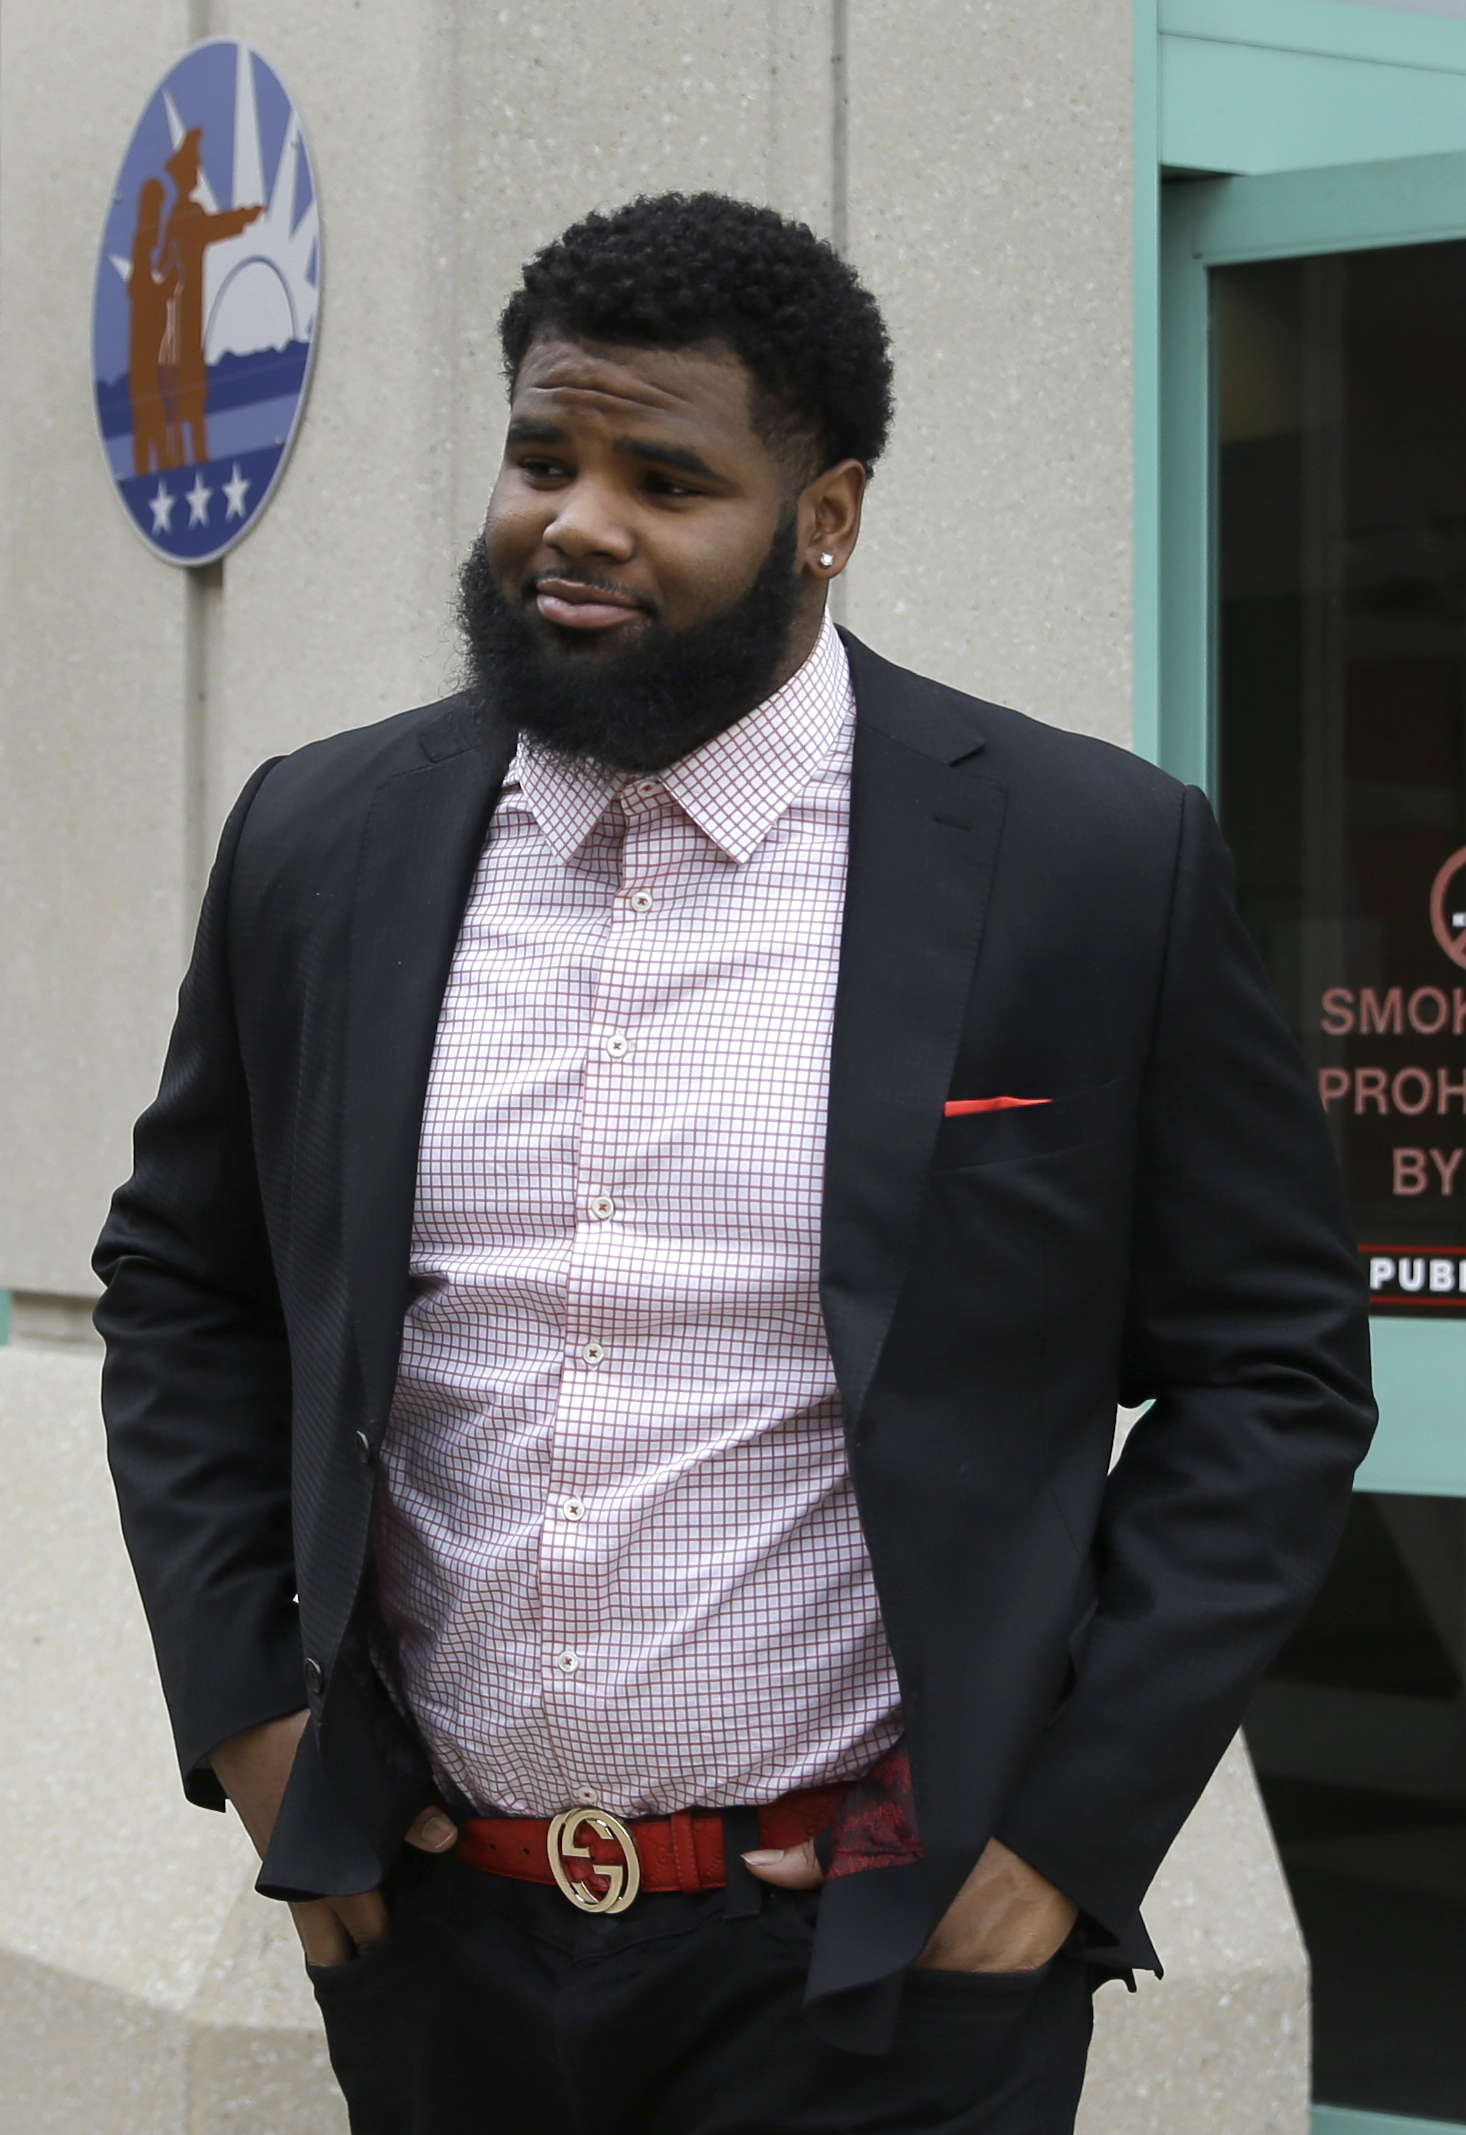 New York Jets NFL football player Sheldon Richardson walks out of the St. Charles County Courthouse, Tuesday, Jan. 26, 2016, in St. Charles, Mo., after pleading guilty to reduced charges connected to a recent high-speed police chase.  Richardson was sente